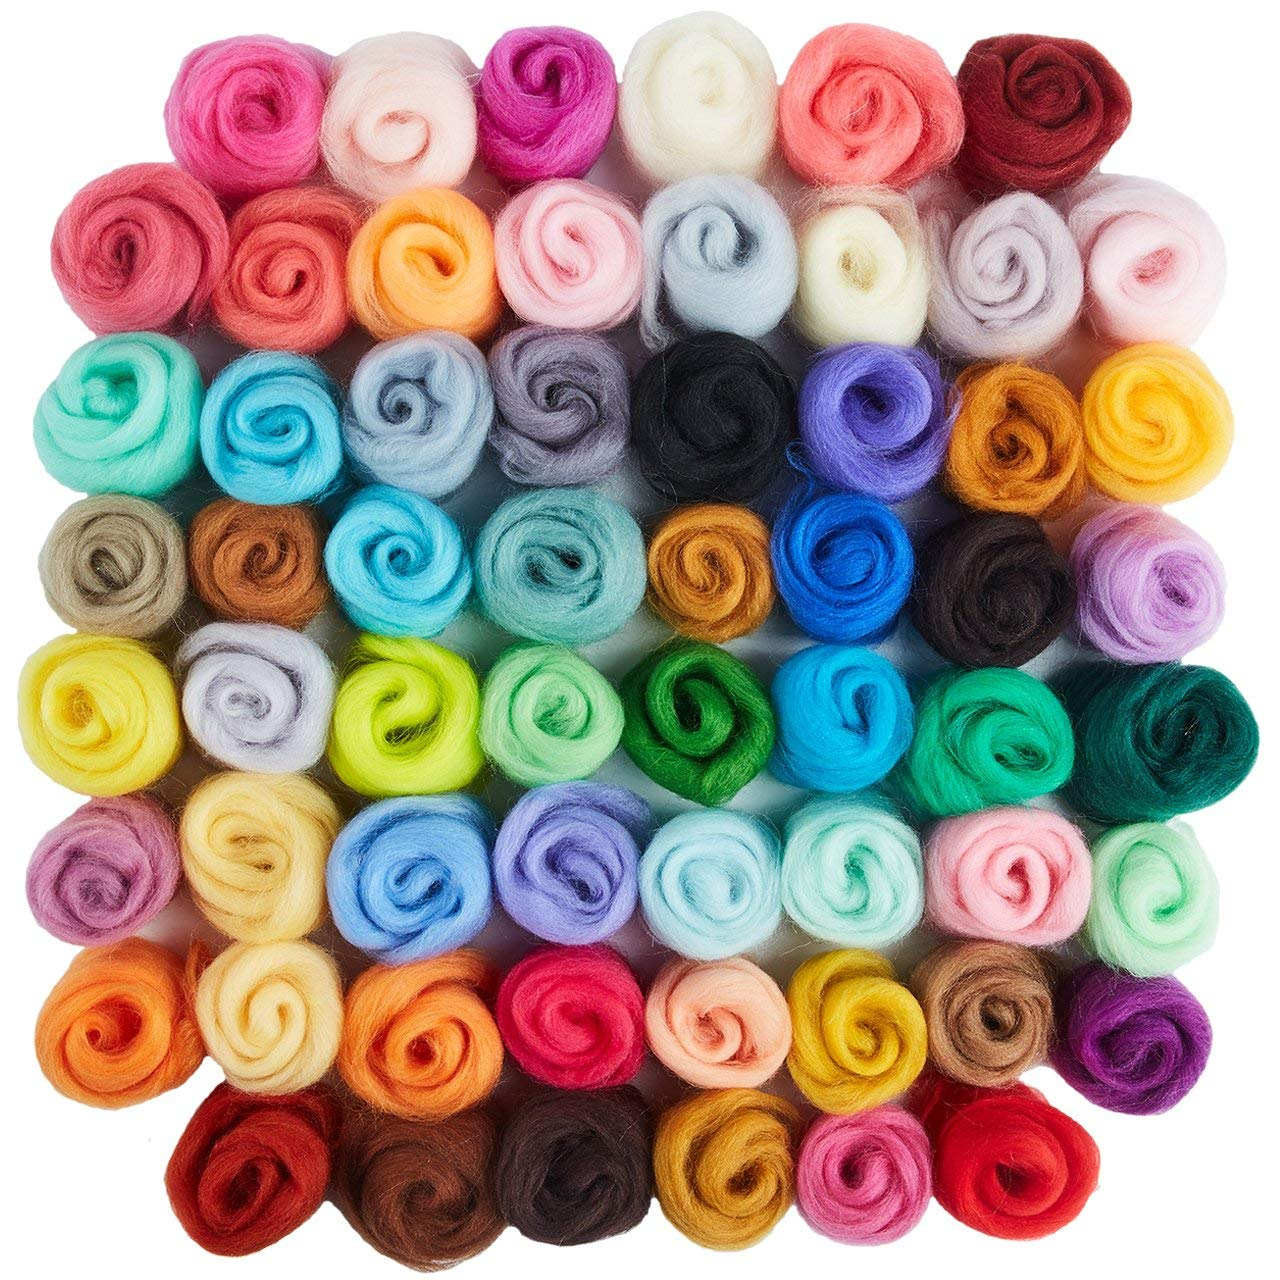 Including 6 Colors 60 Sets Leather Rivets with 4Pcs Fixing Tools and Soft Tape Measure Metal Button Leather Snap Fasteners Press Studs Kit for Clothes Swpeet 65Pcs 12.5mm Leather Snap Fasteners Kit